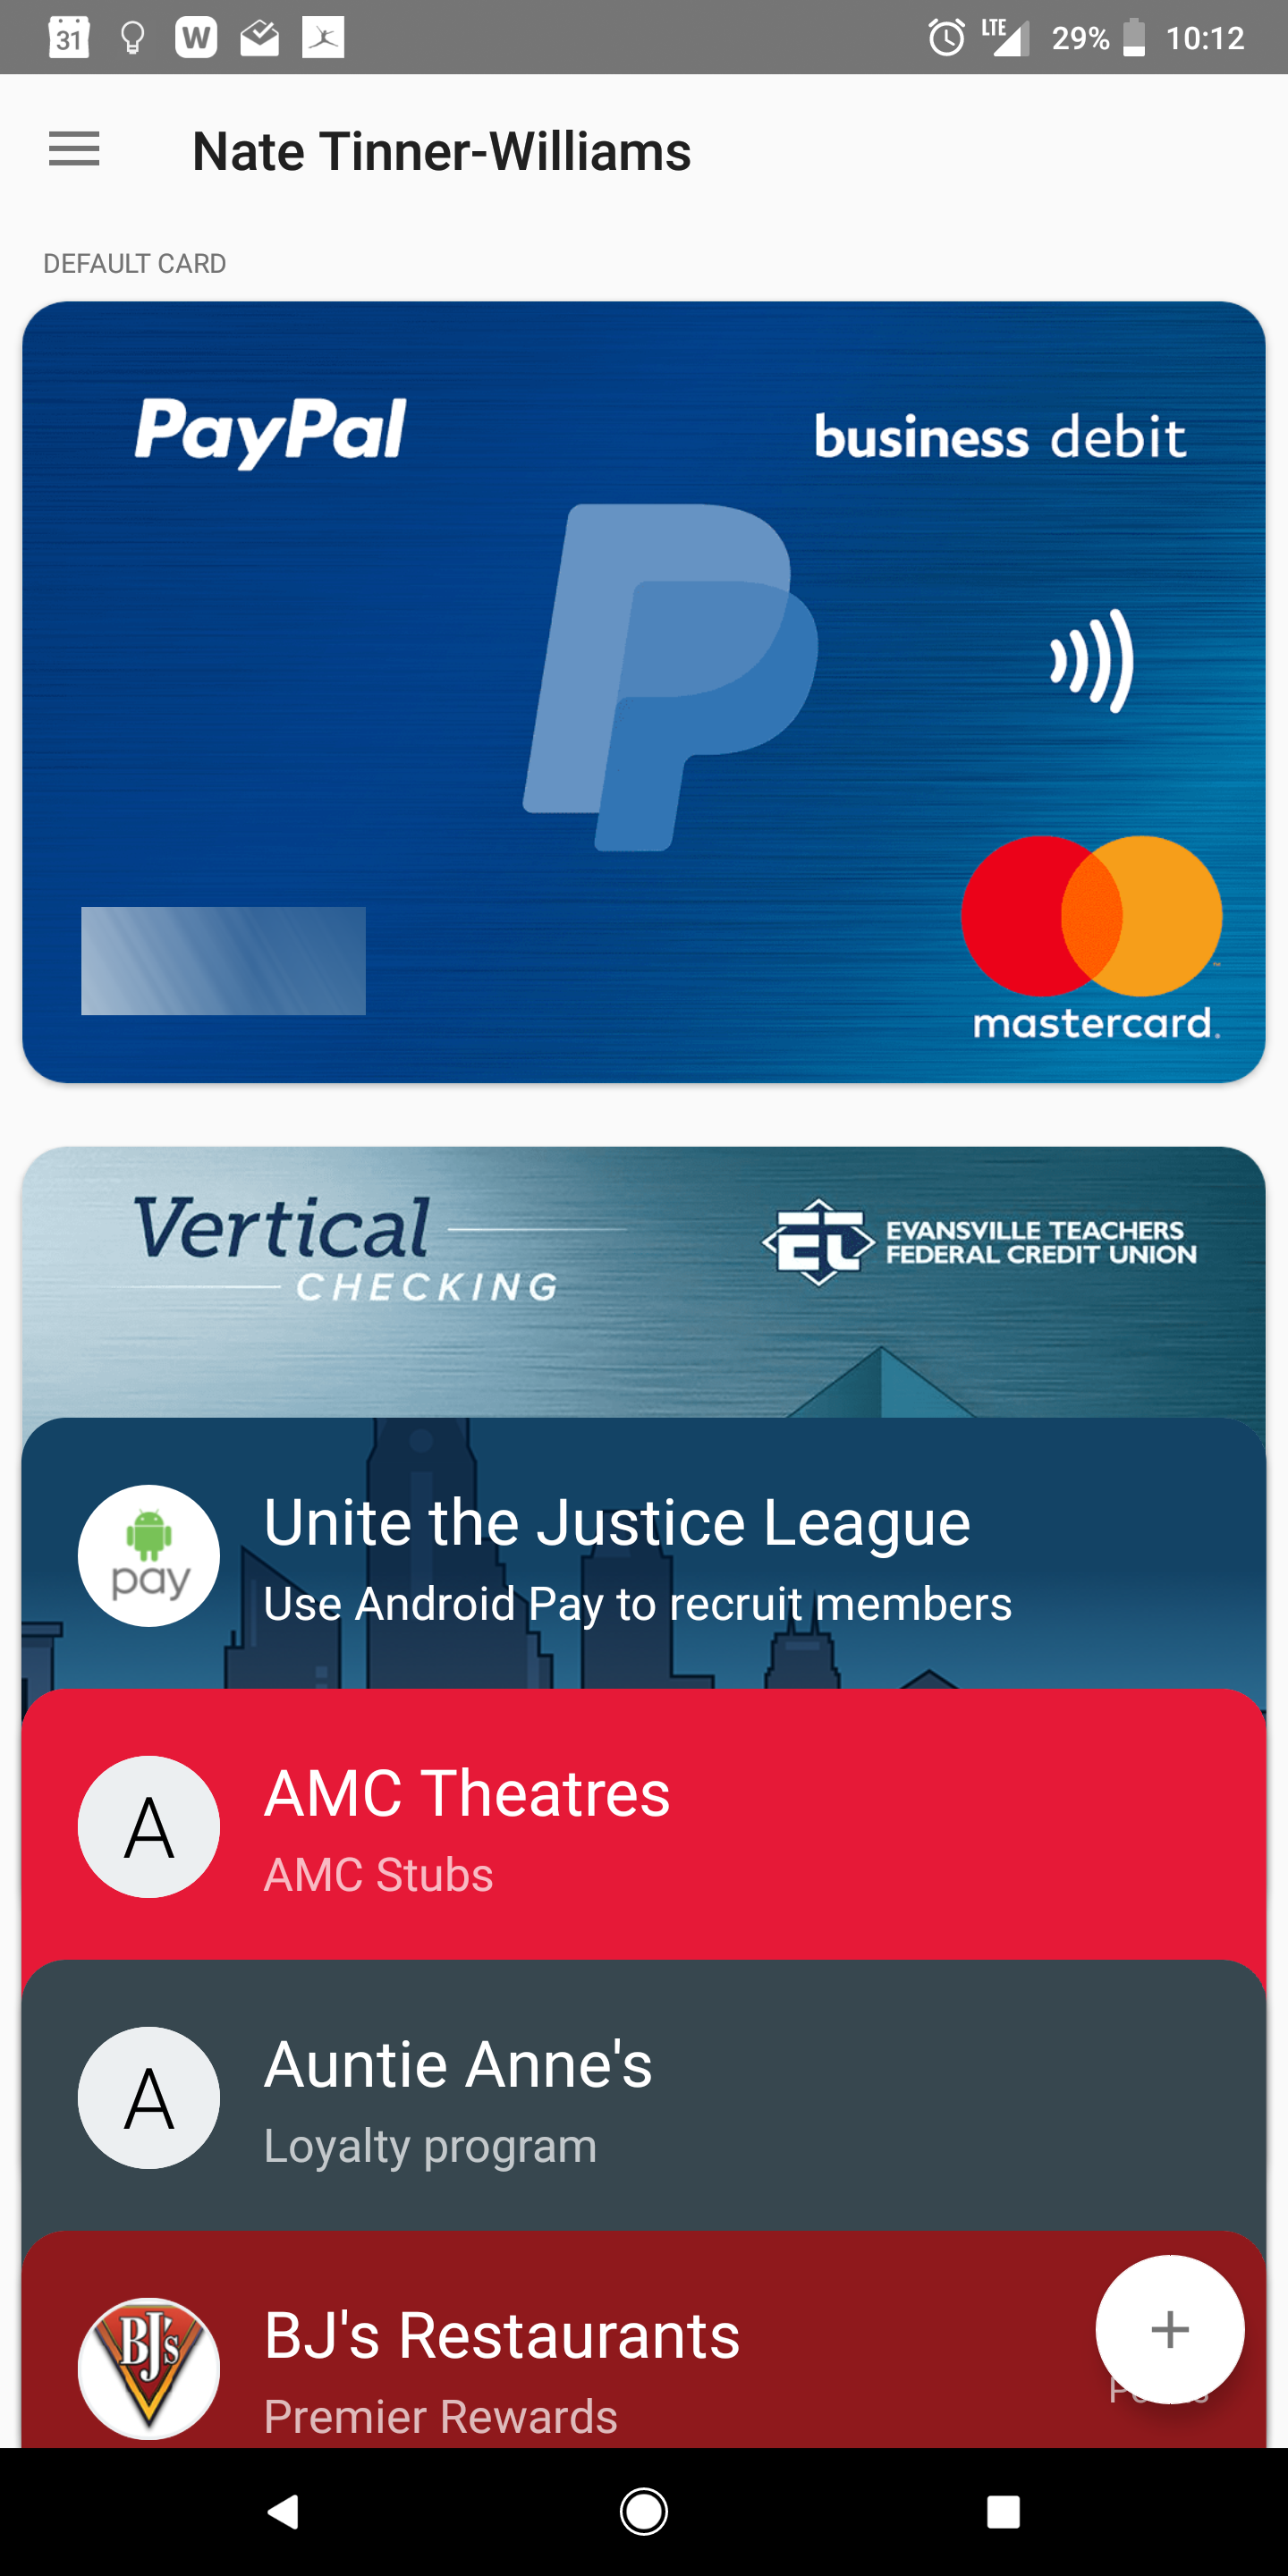 You can now add your PayPal Business Debit Mastercard to Android Pay